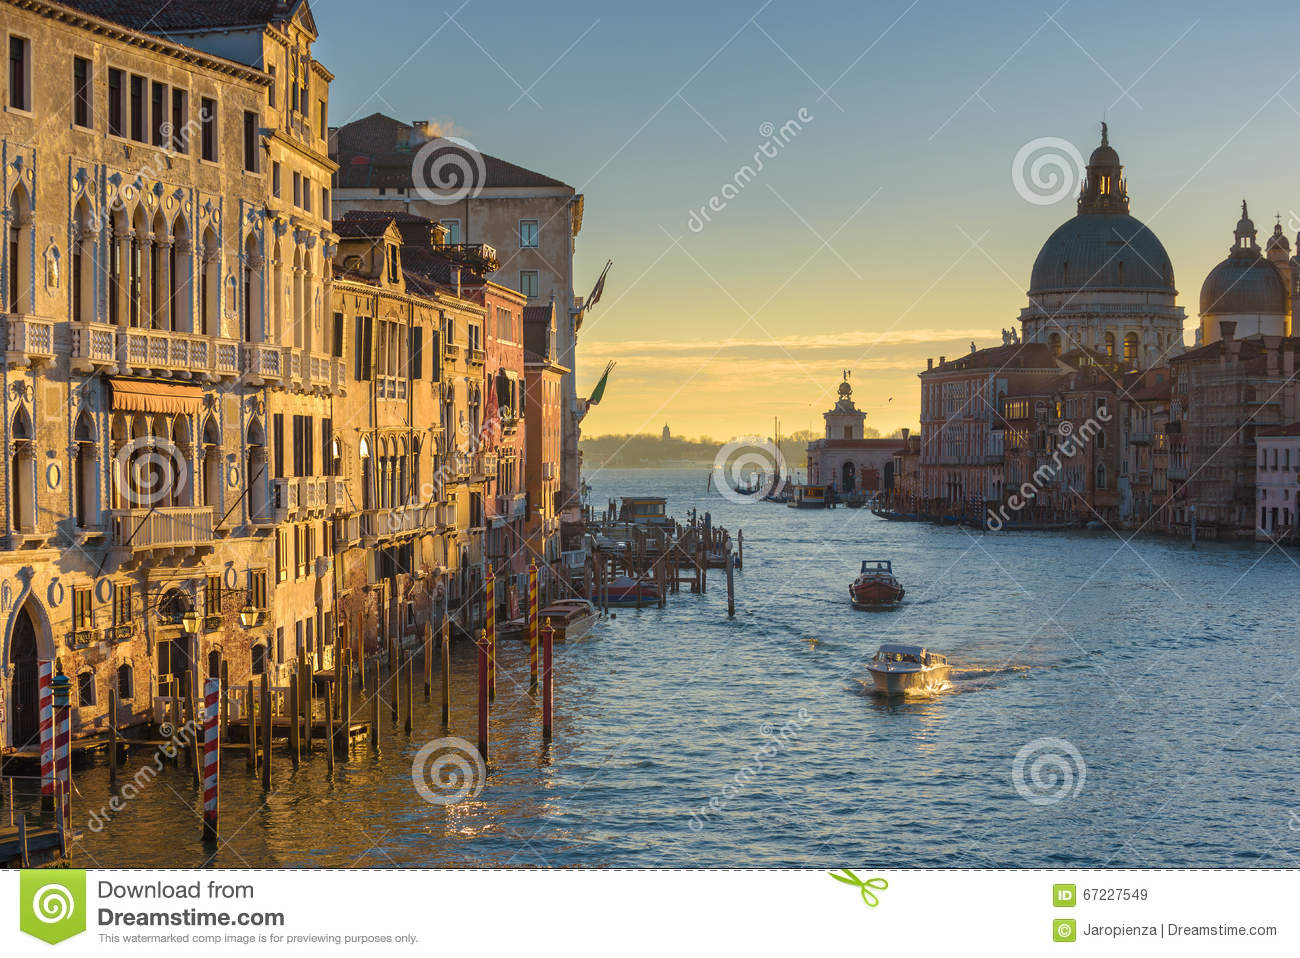 Water Channels The Biggest Tourist Attractions In Italy Venice